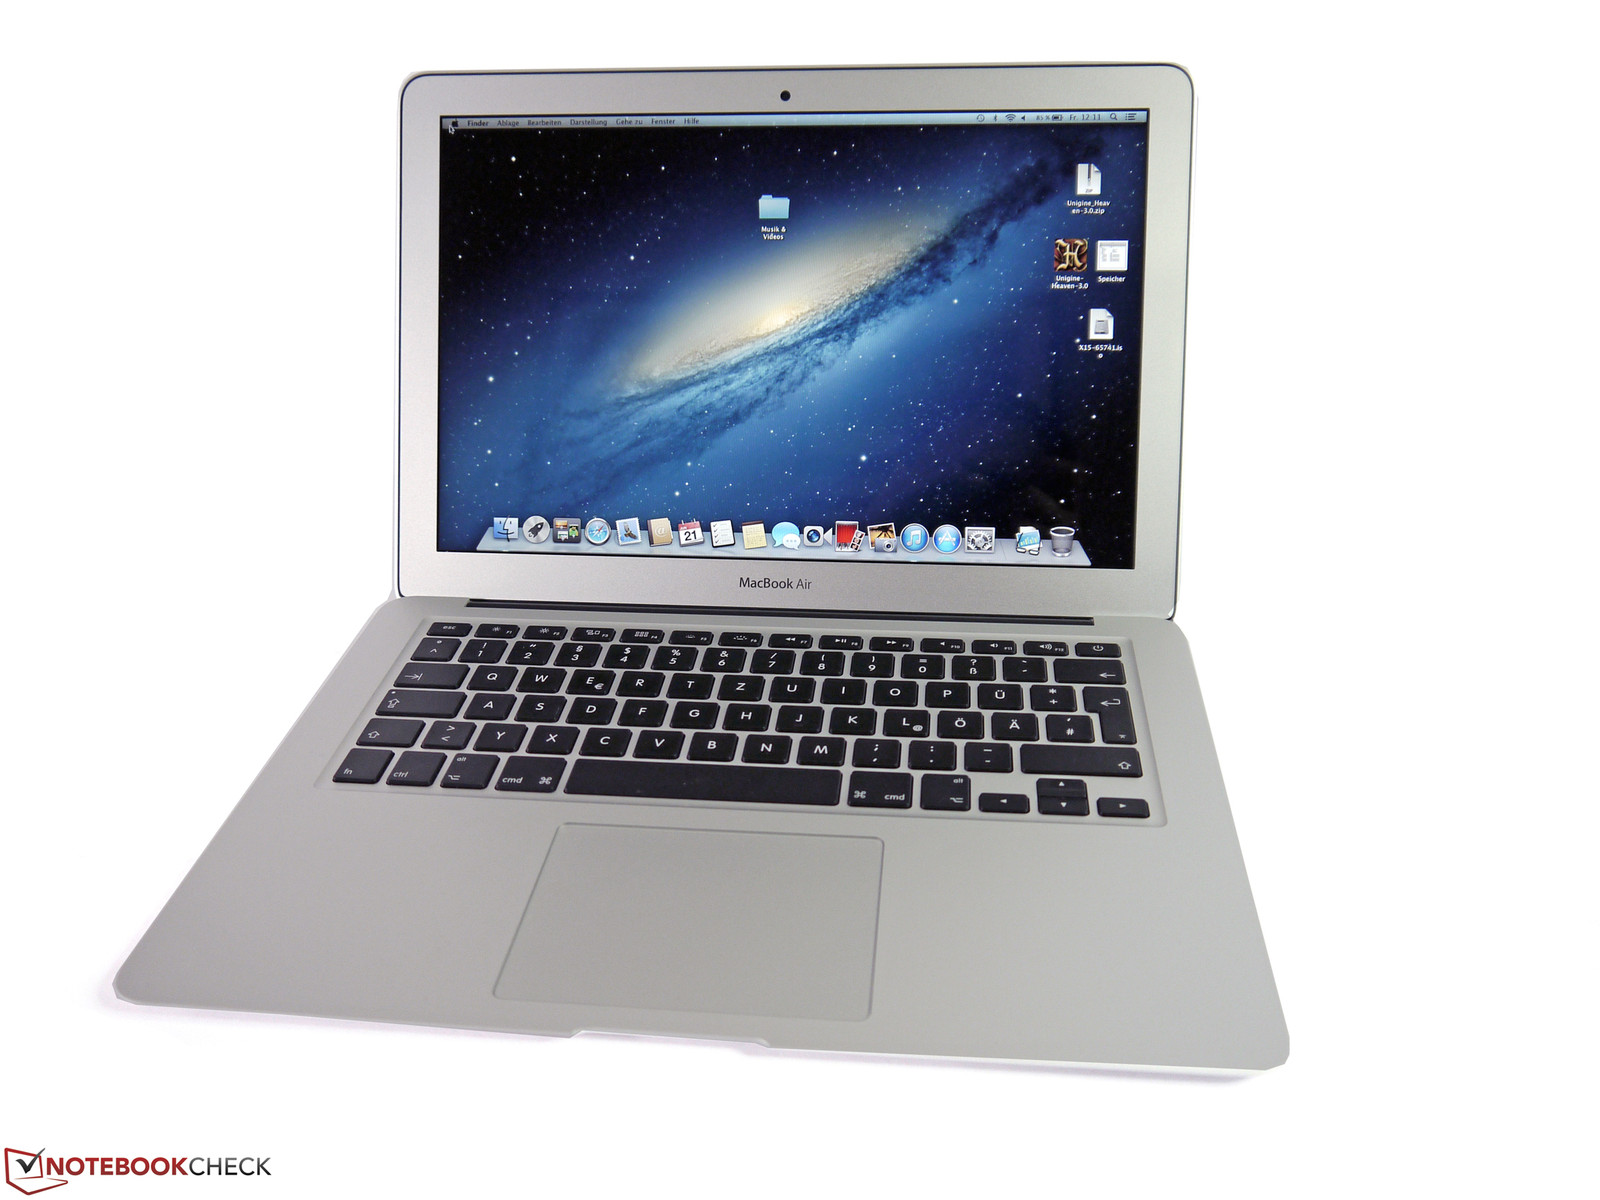 Kgi Low Cost Macbook Air 13 Coming In Q2 2018 Notebookcheck Net News